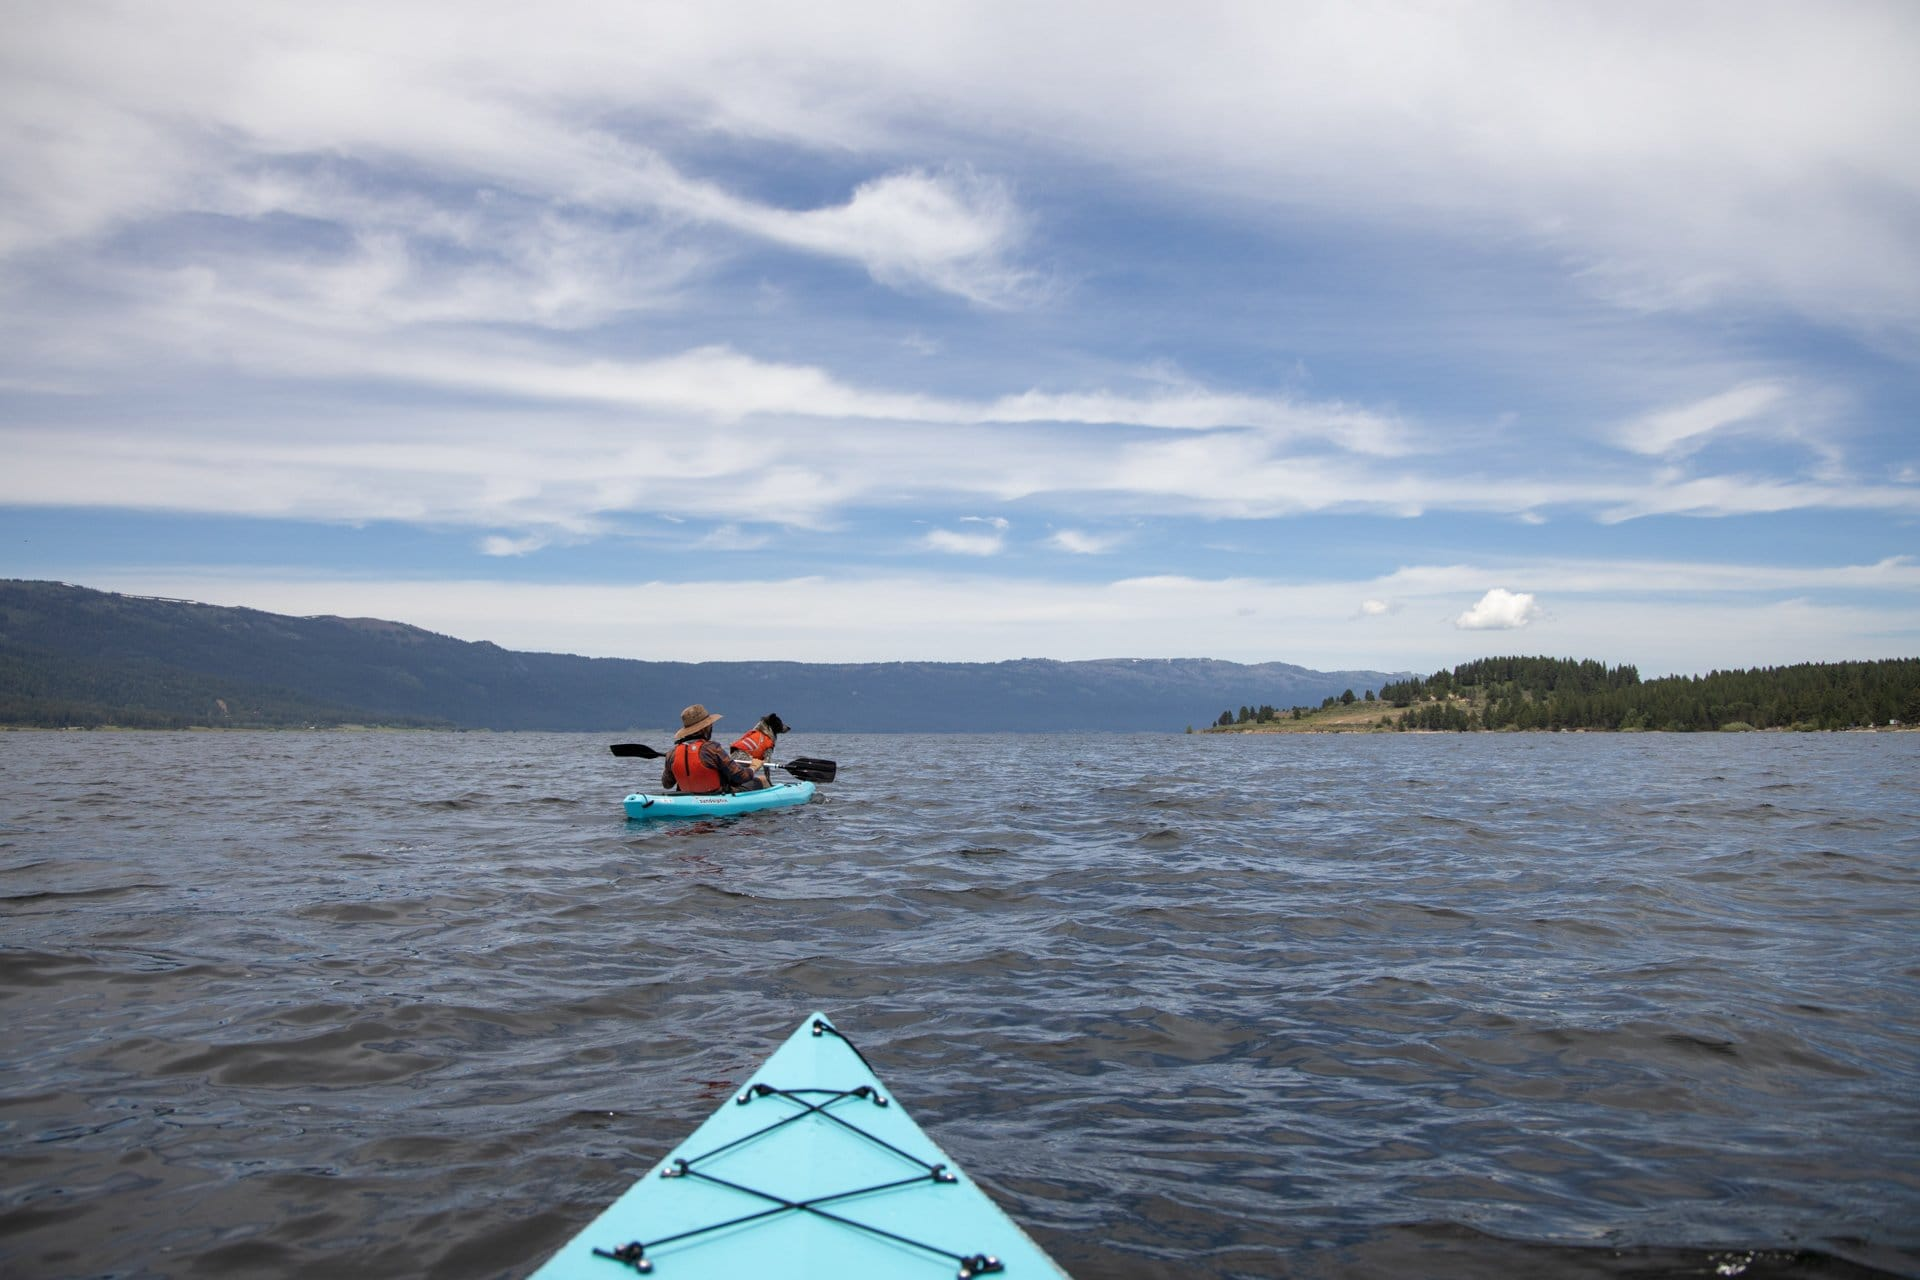 Kayaking on Lake Cascade // Hot springs, hiking, off-roading, biking, and more. Explore the best outdoor recreation in Cascade with this 4-day Cascade Idaho itinerary.